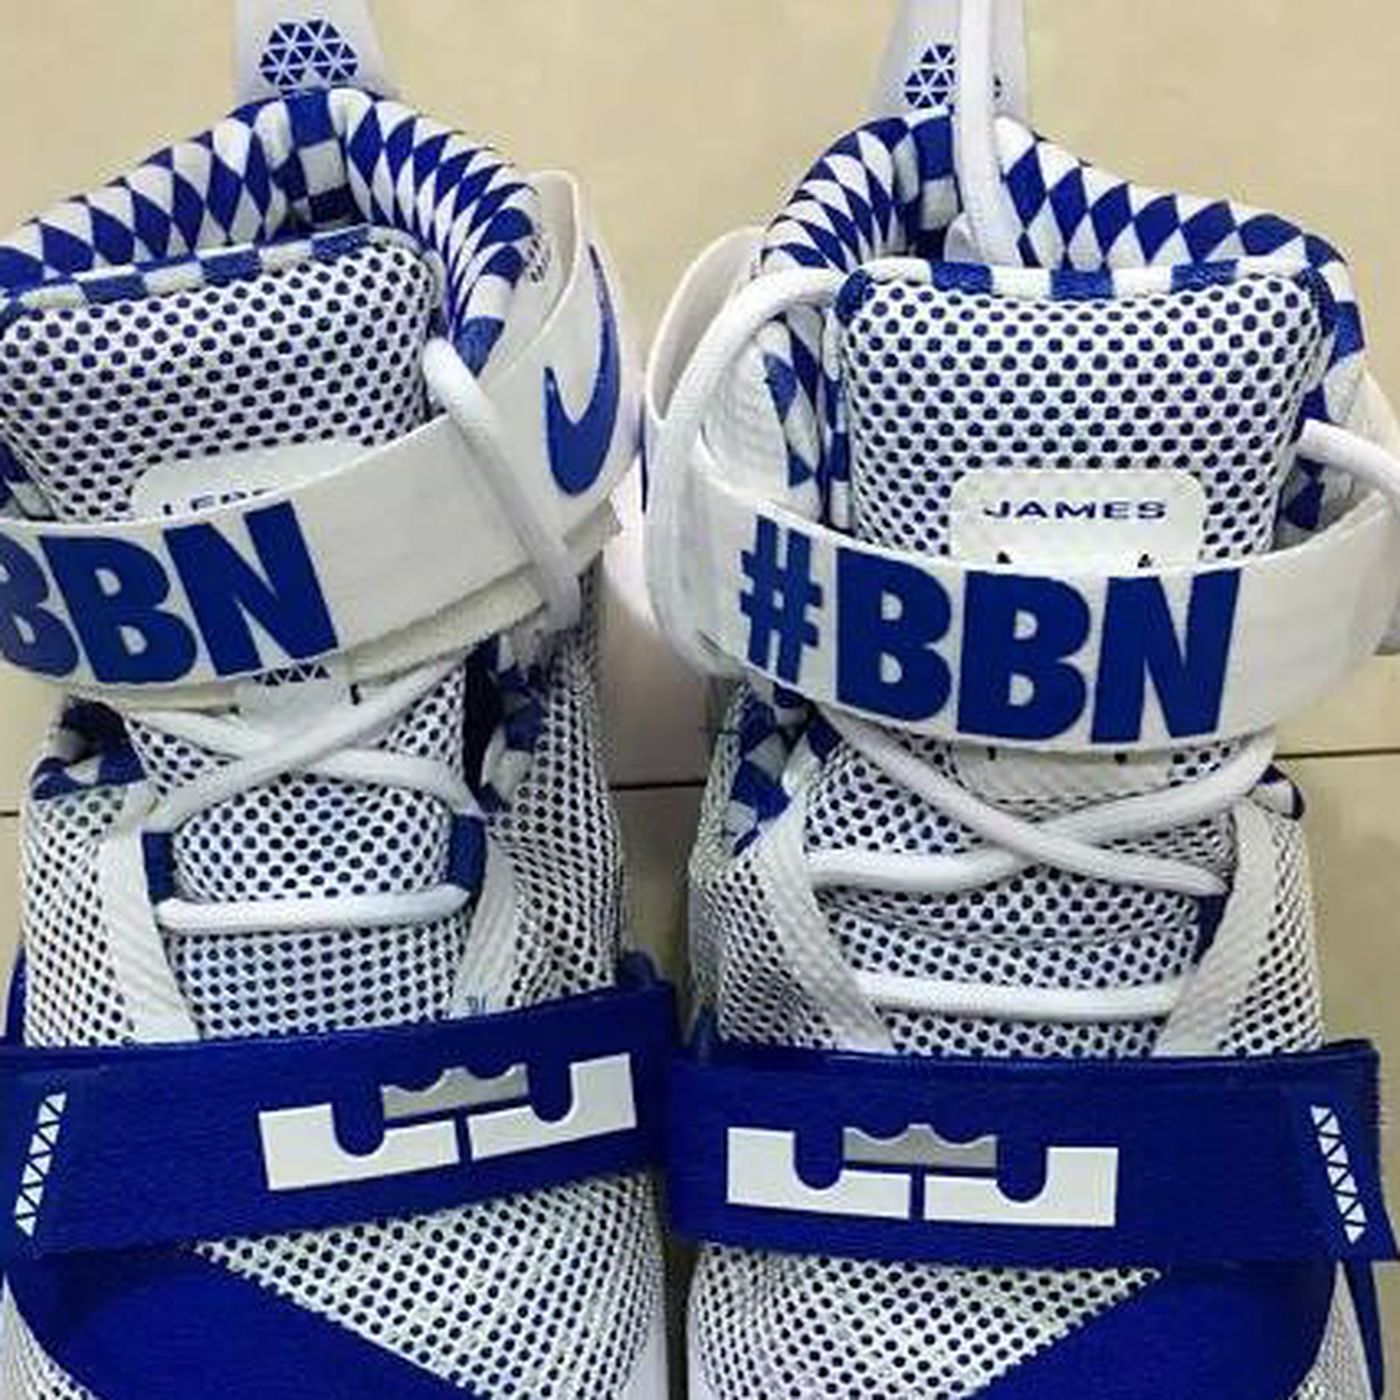 e2a9556d065 Kentucky Basketball Nike LeBron Zoom Soldier 9 Revealed - A Sea Of Blue